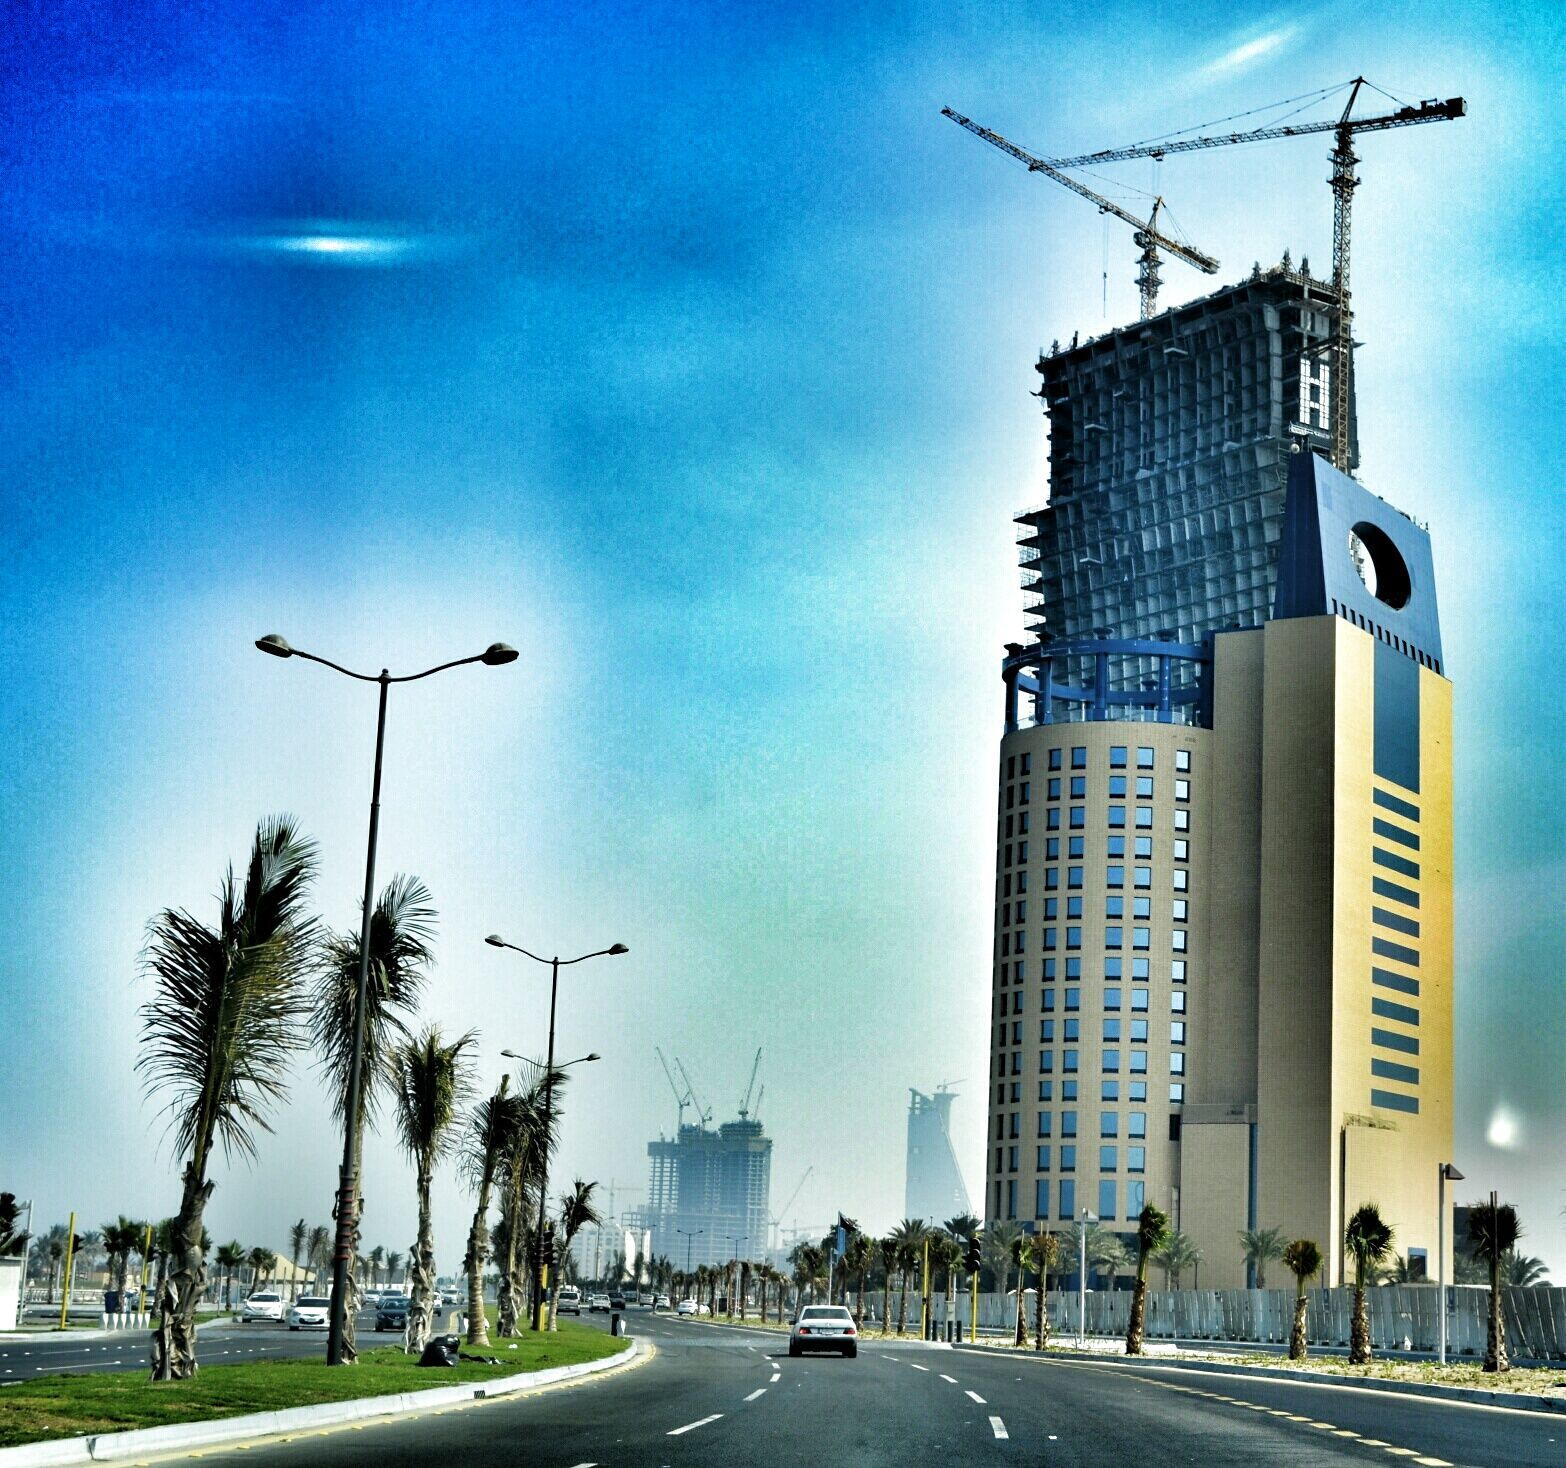 Jeddah Is The Principal Gateway To Mecca Islam S Holiest City Which Able Bodied Muslims Are Required To Visit At Leas Jeddah Saudi Arabia Jeddah Saudi Arabia